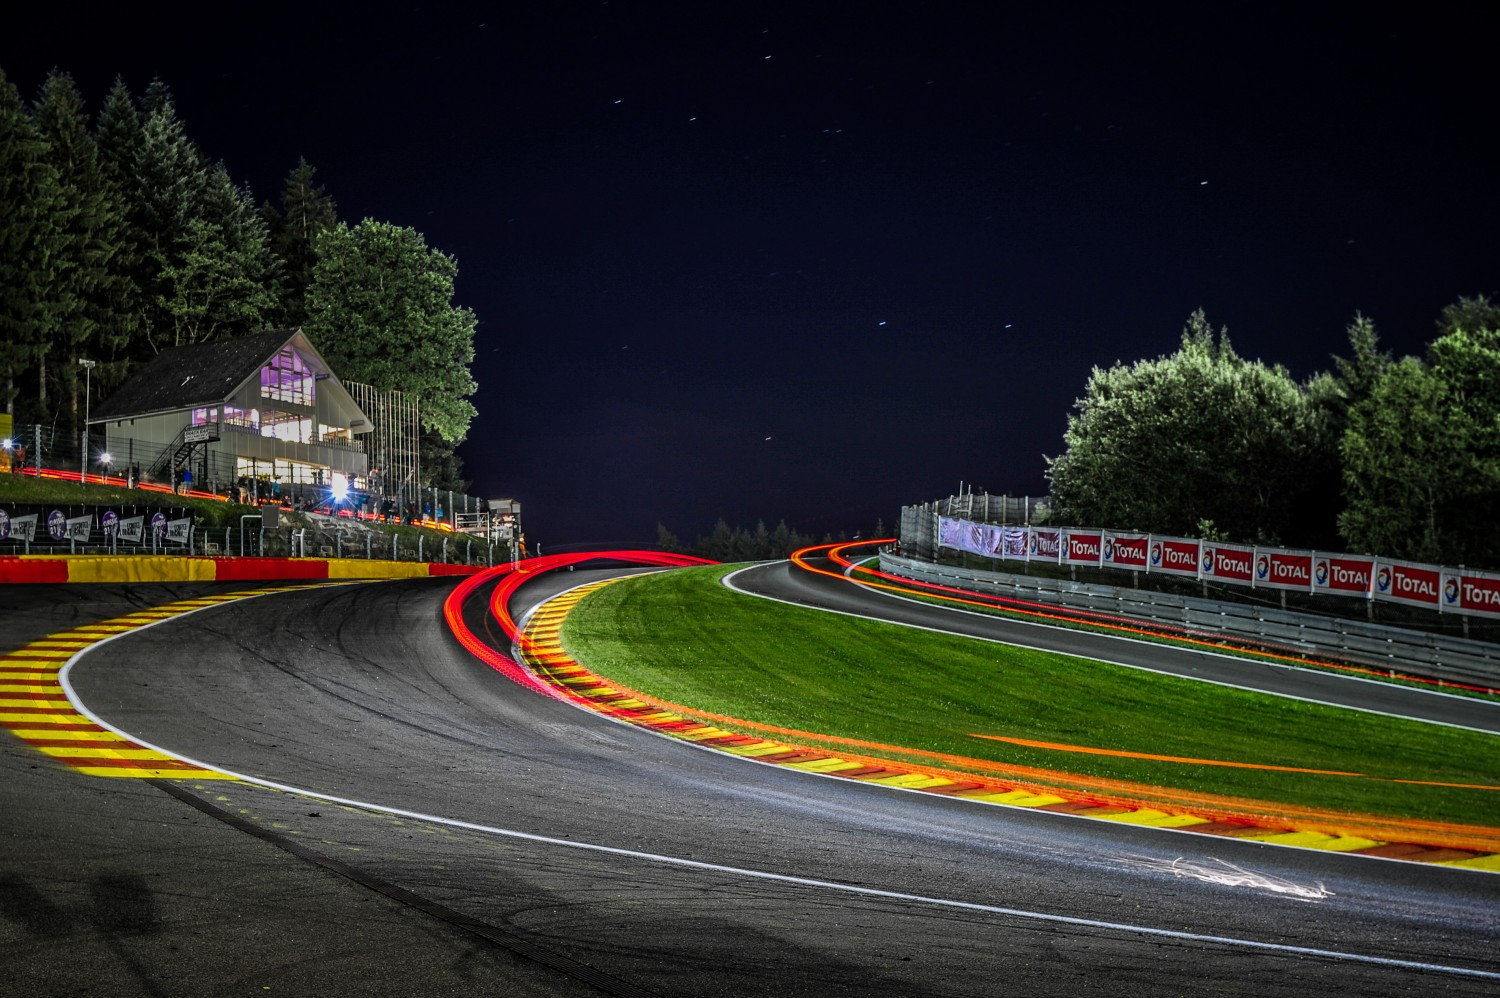 More than 50 drivers could win the 2016 Total 24 Hours of Spa